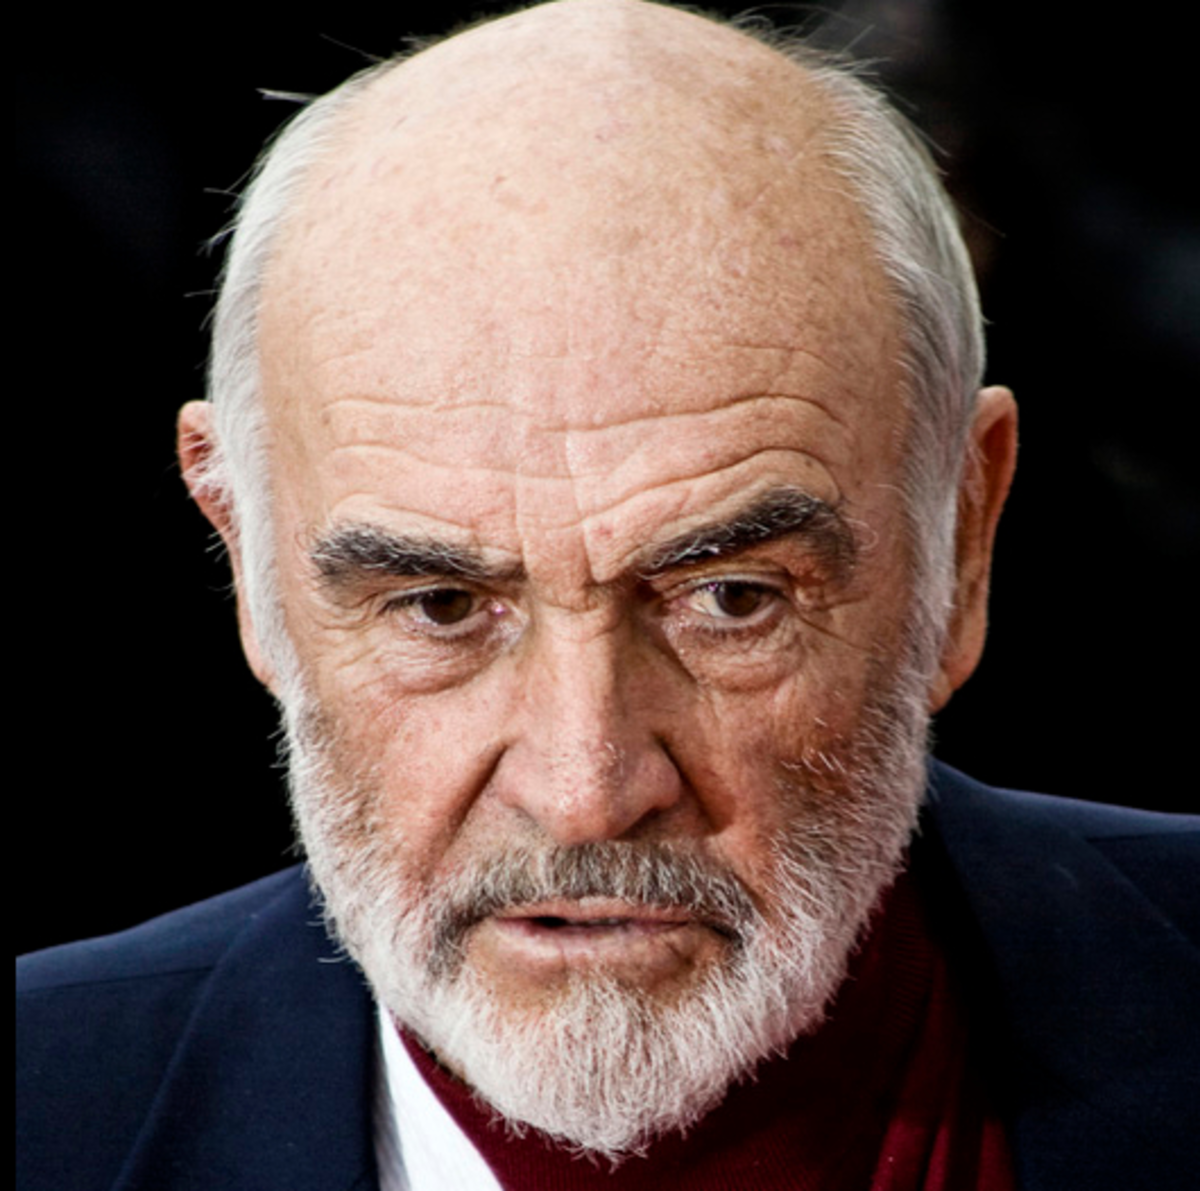 Sean Connery, aging magnificently